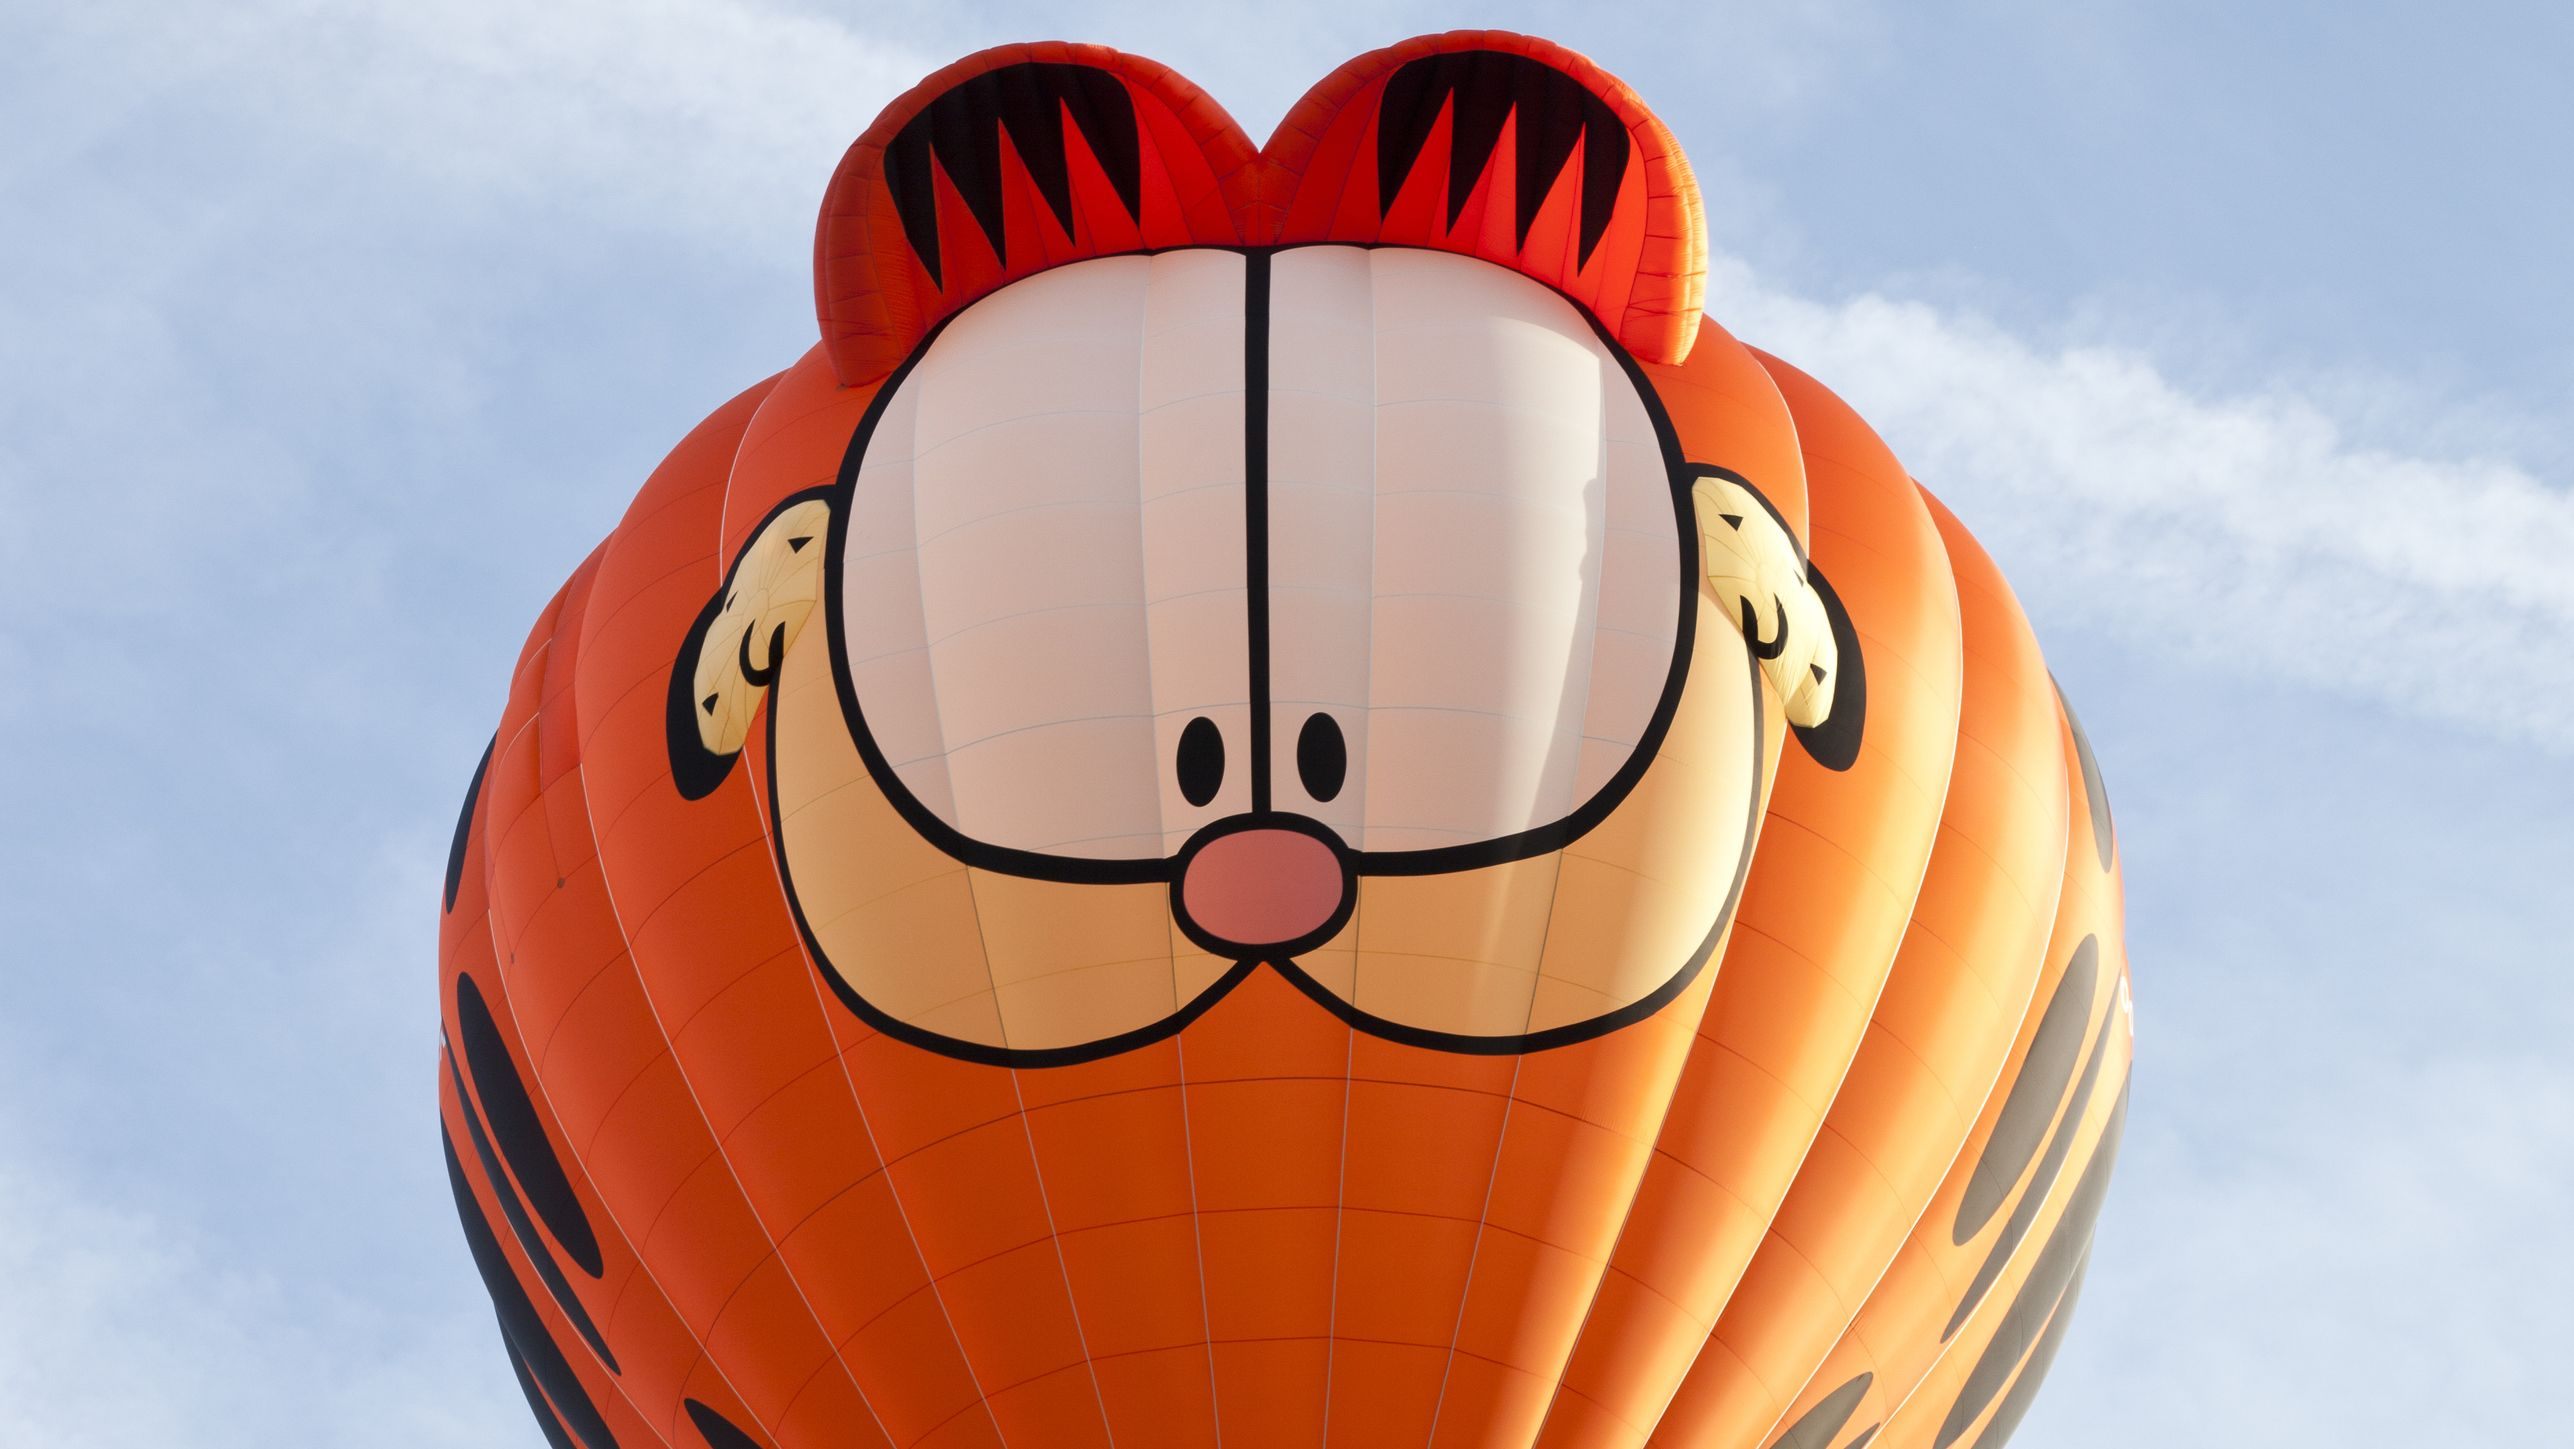 20 Things You Might Not Know About Garfield Mental Floss